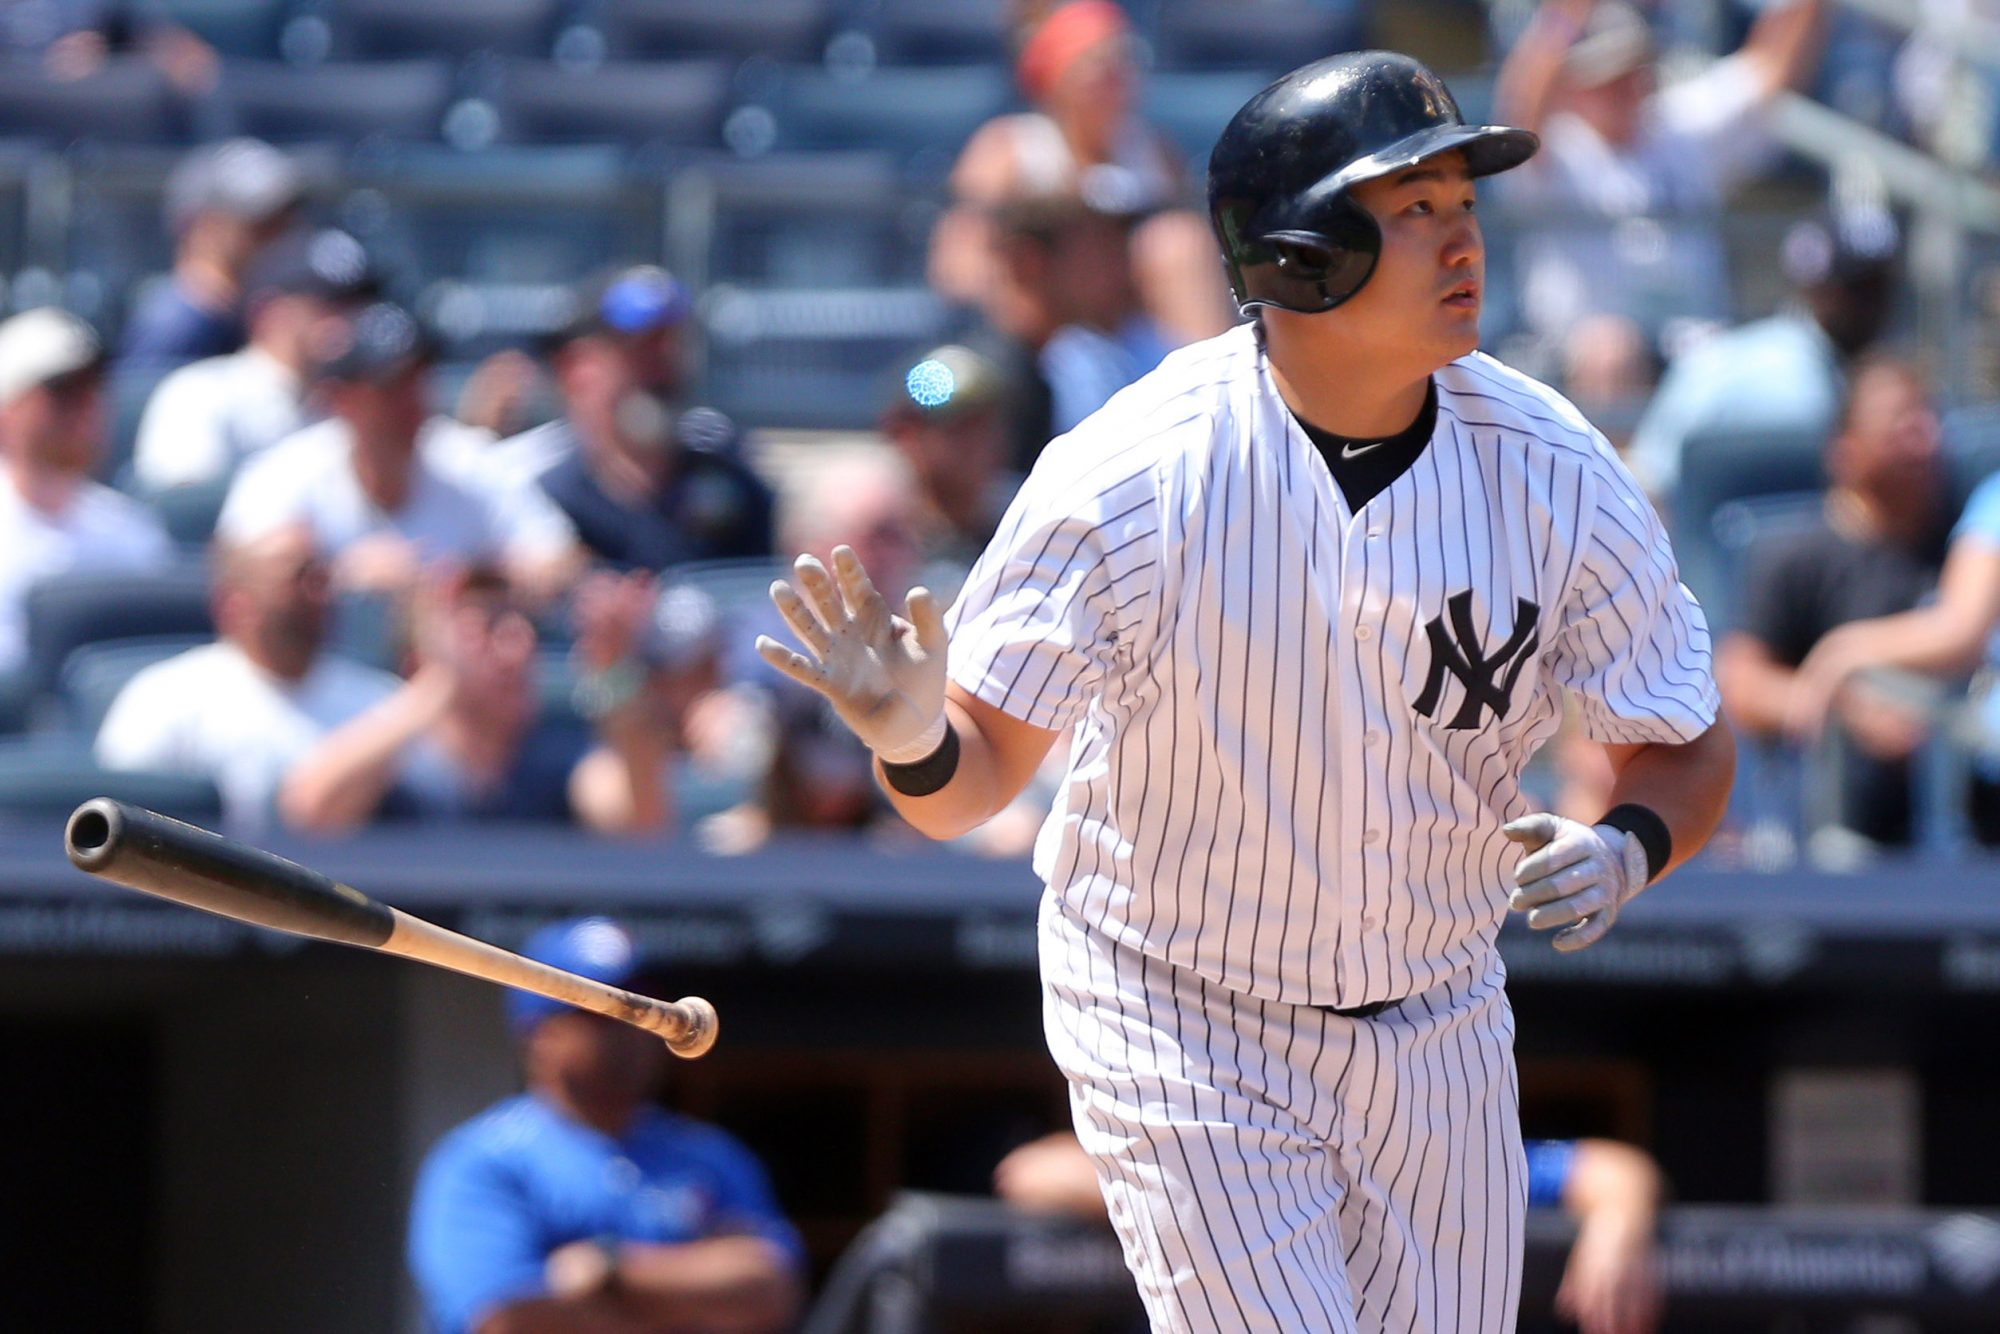 New York Yankees: Ji-Man Choi's Debut Was A Delightful Sight